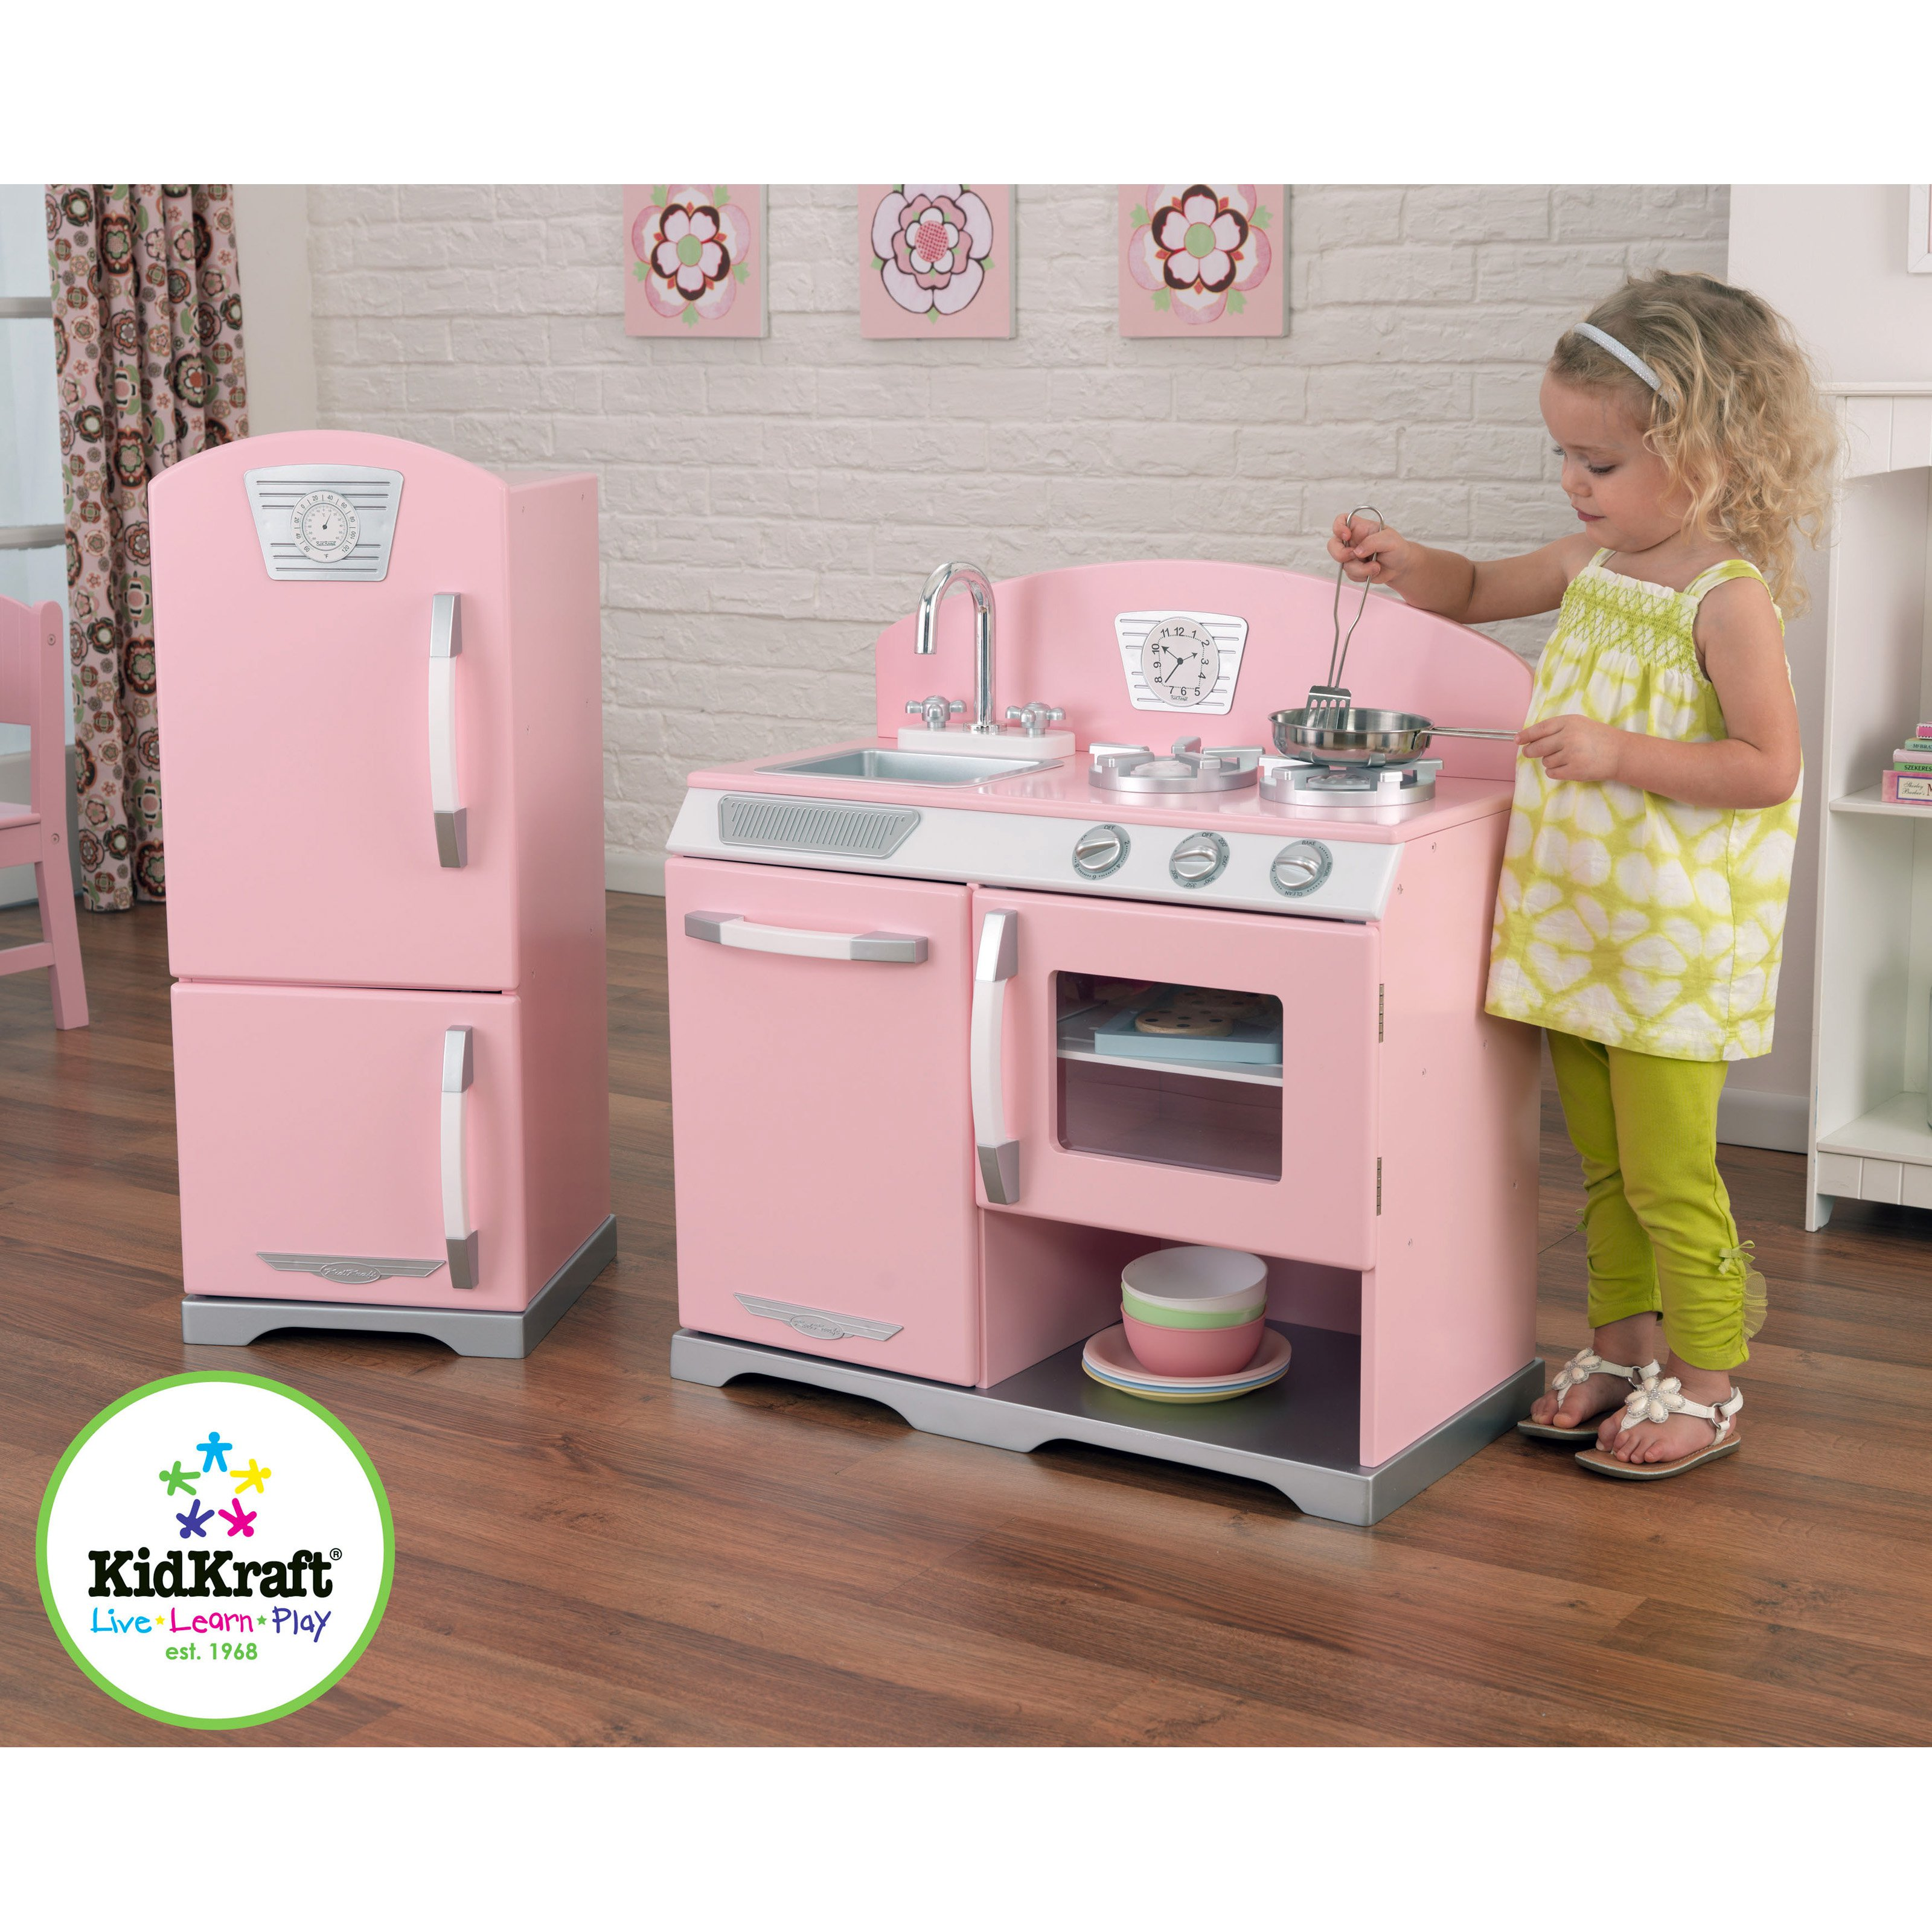 Beautiful KidKraft Pink retro Wooden Play Kitchen and Refrigerator - Walmart.com kidkraft retro kitchen